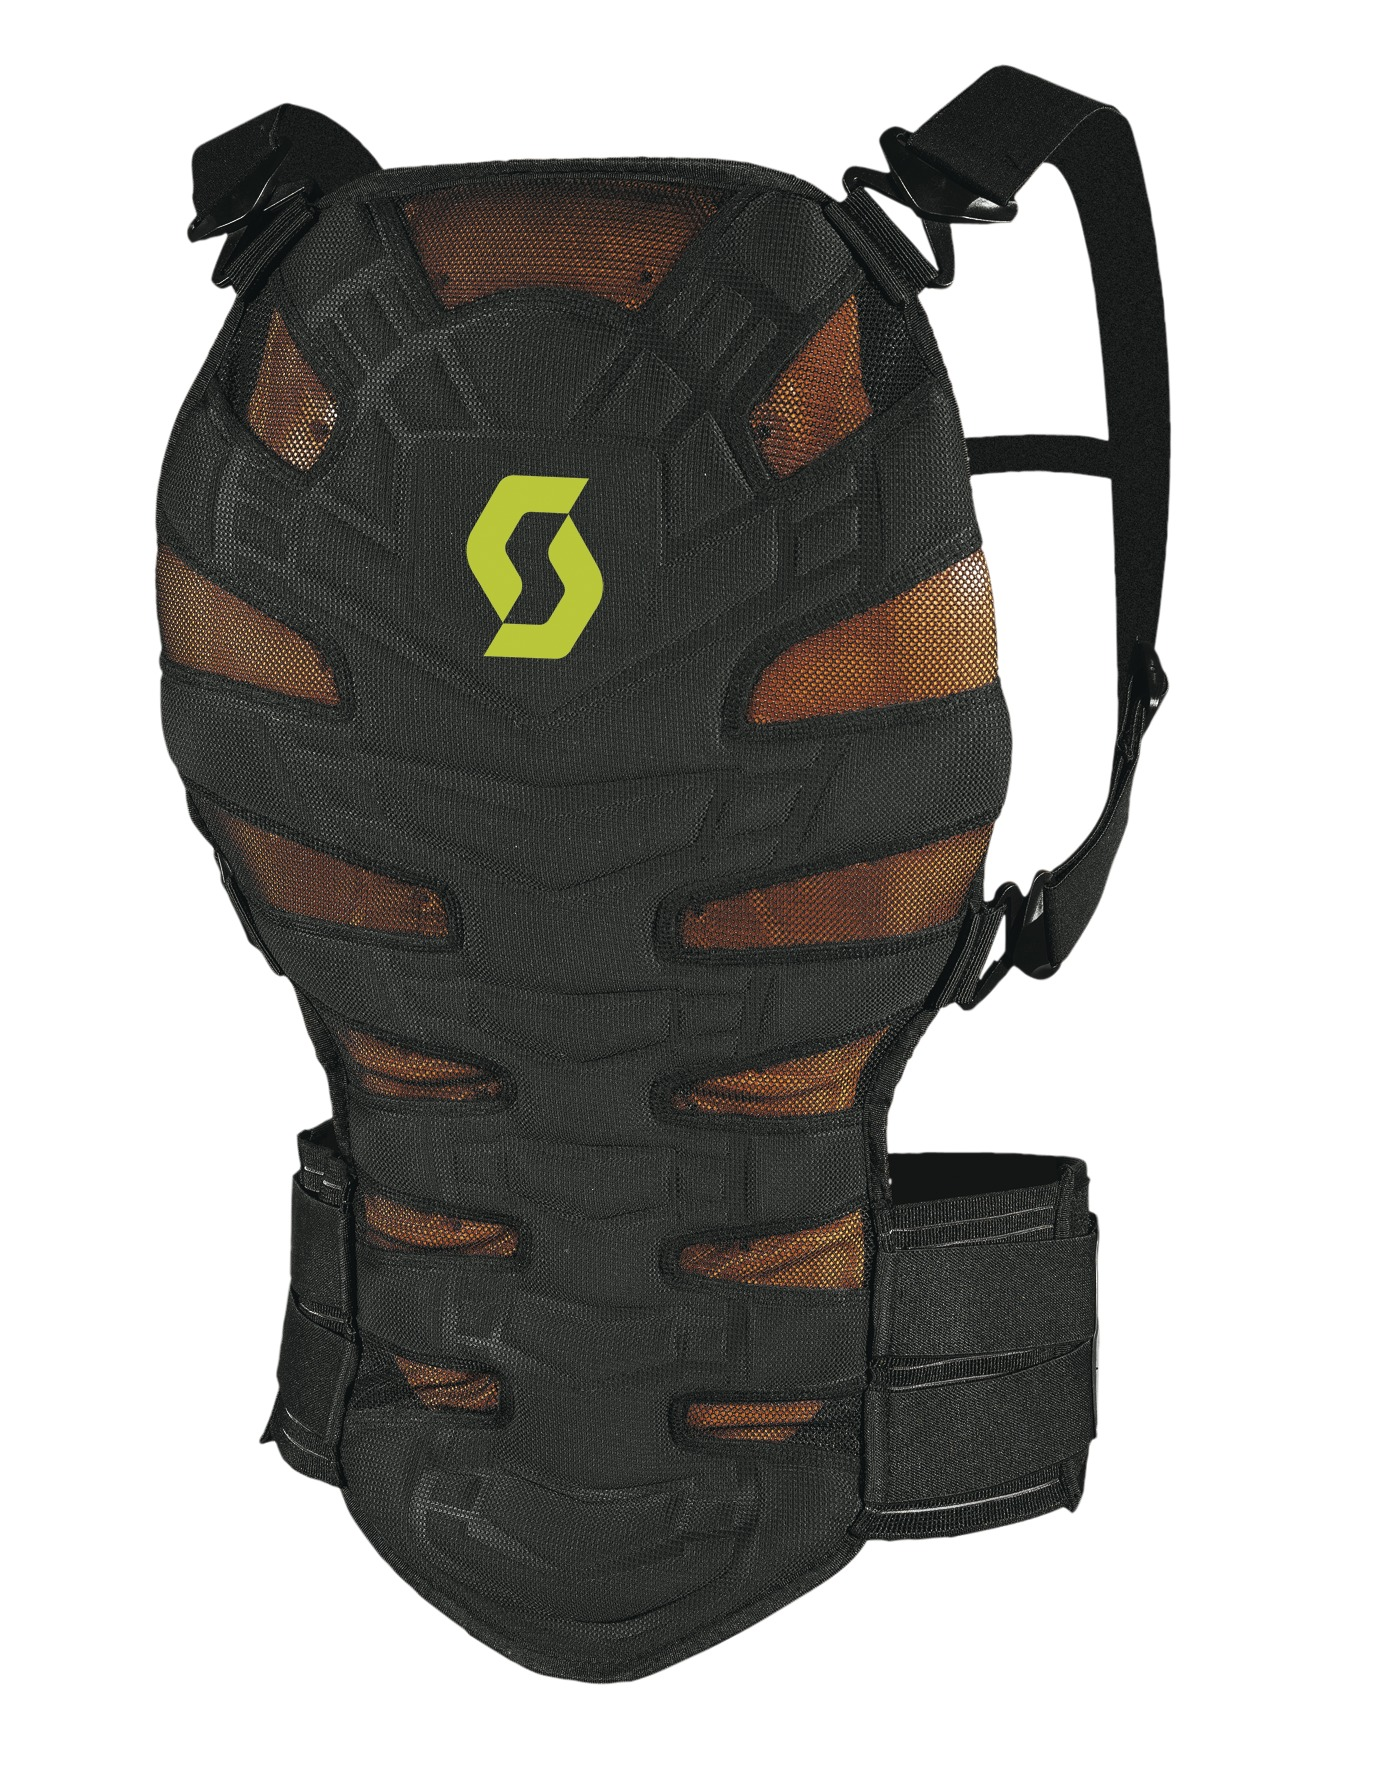 SCOTT – Soft CR II Back Protector Image